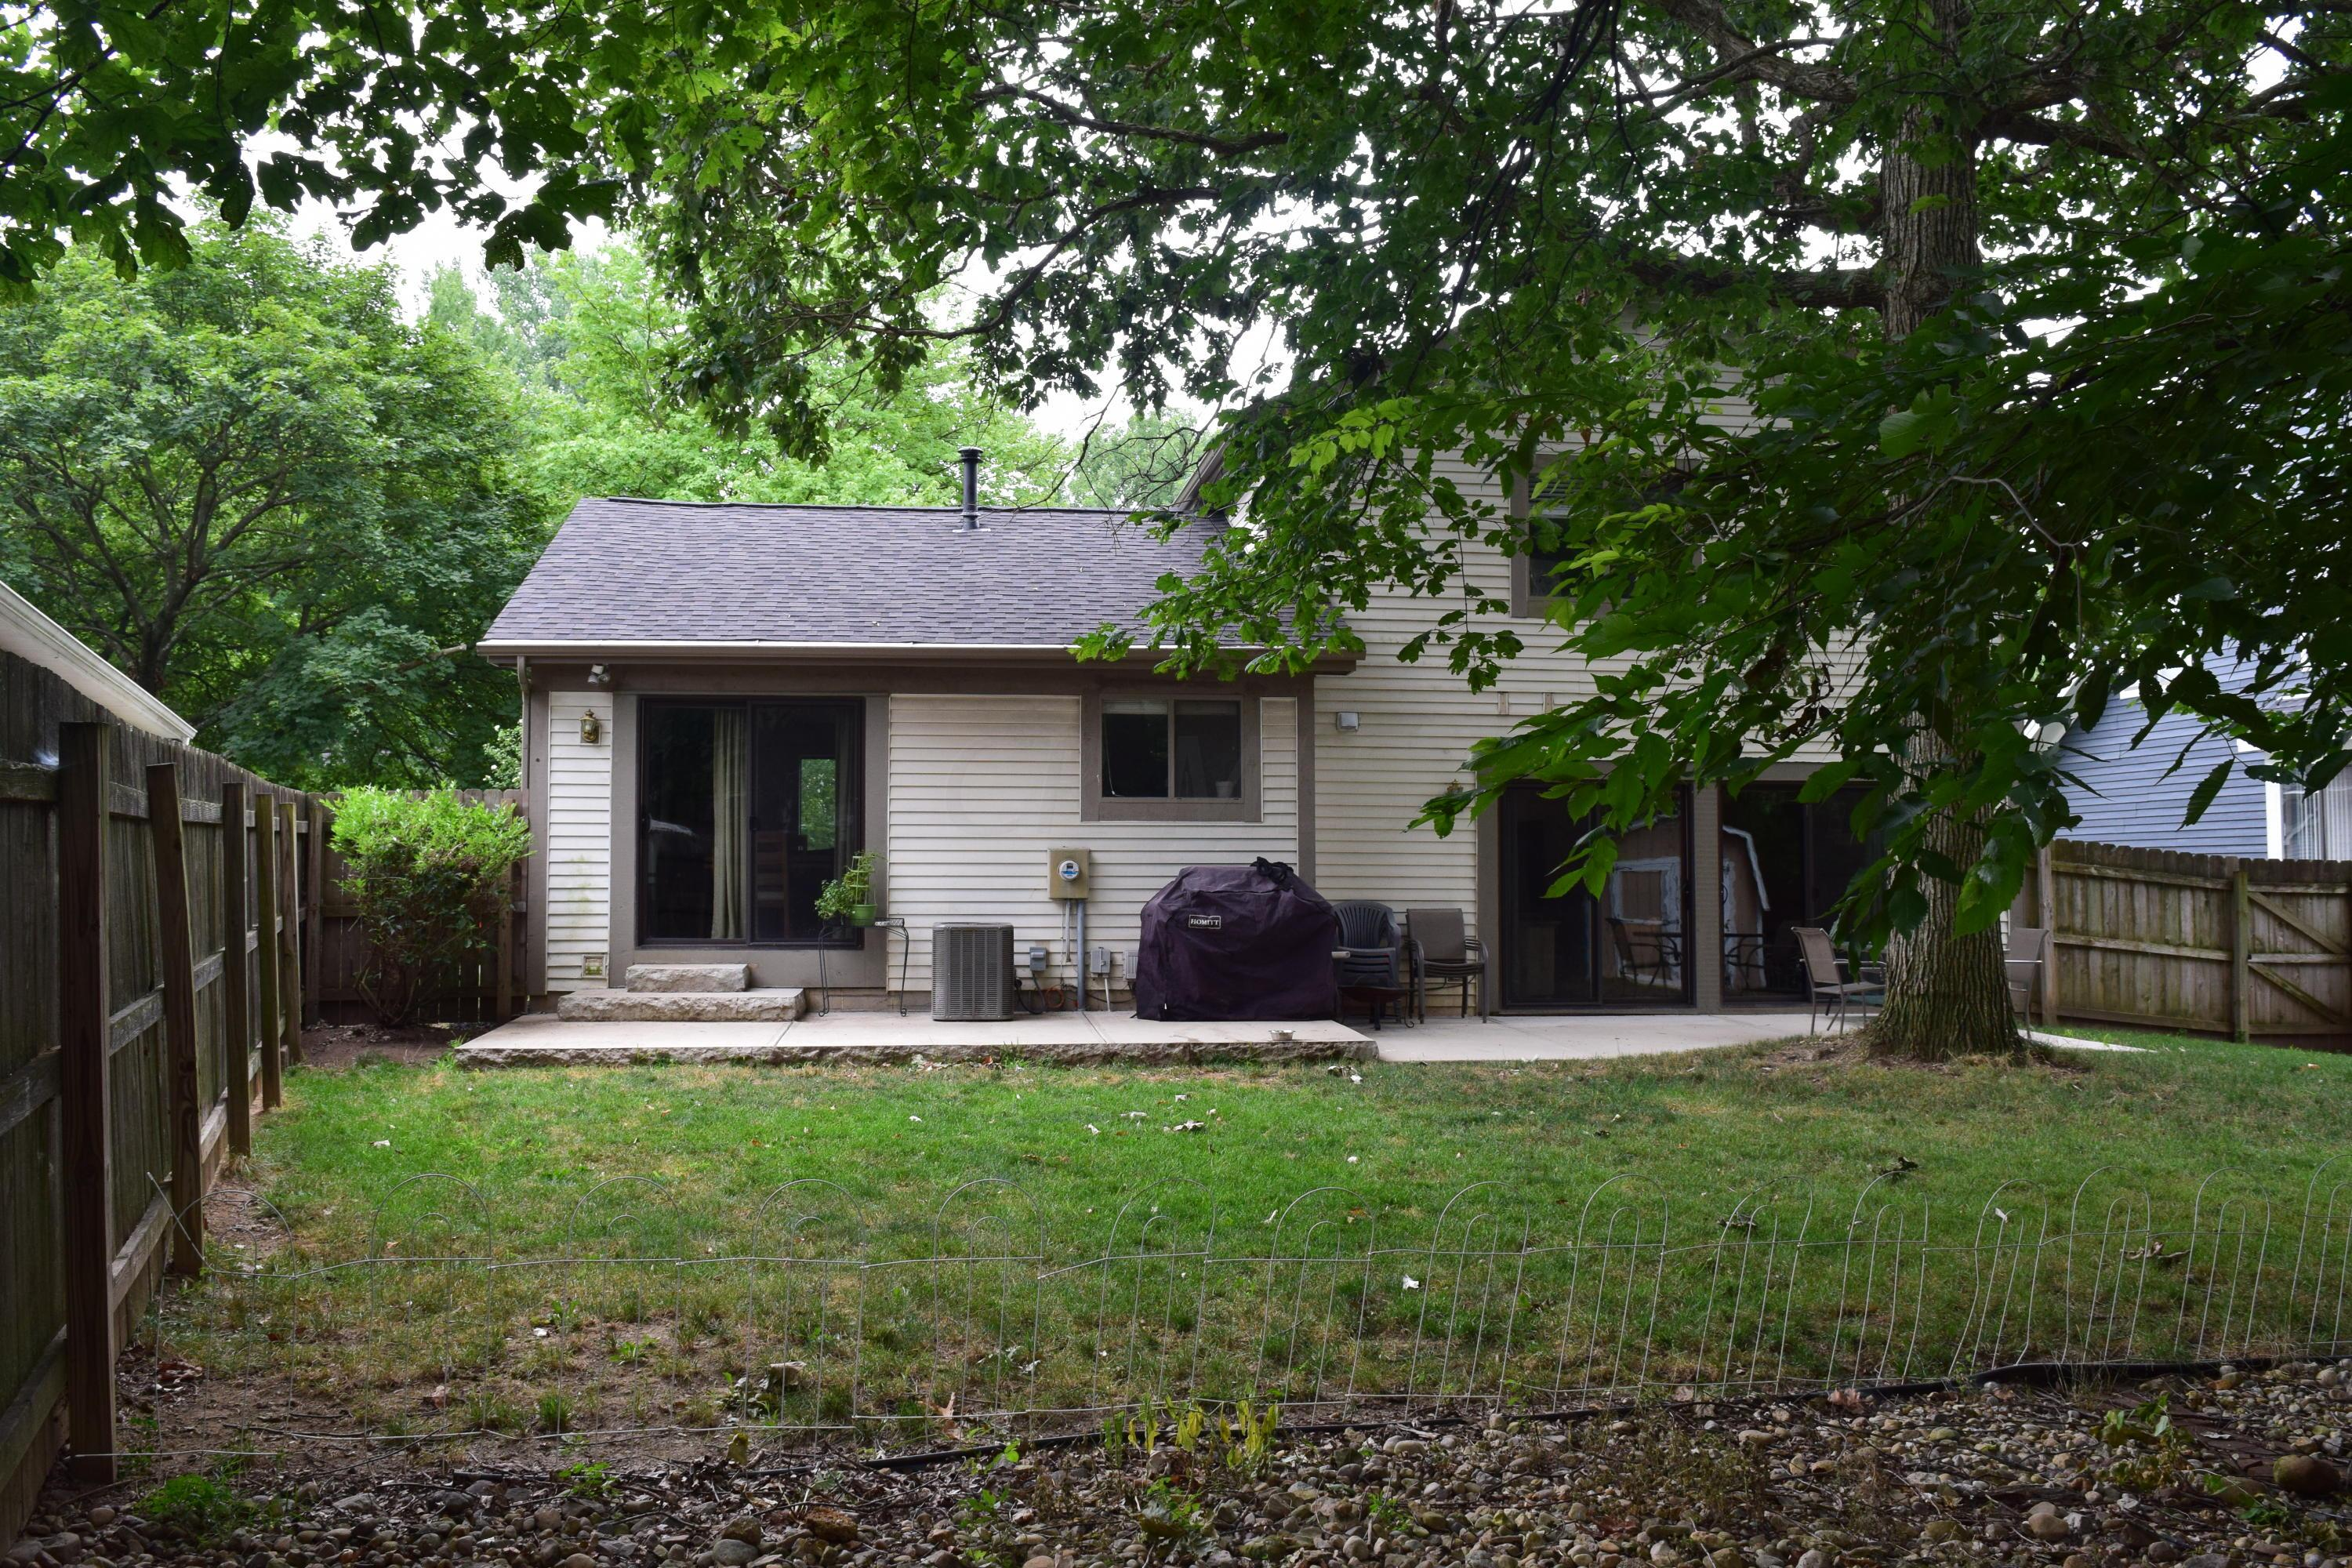 2372 Worthingwoods Boulevard, Powell, Ohio 43065, 3 Bedrooms Bedrooms, ,3 BathroomsBathrooms,Residential,For Sale,Worthingwoods,220025509